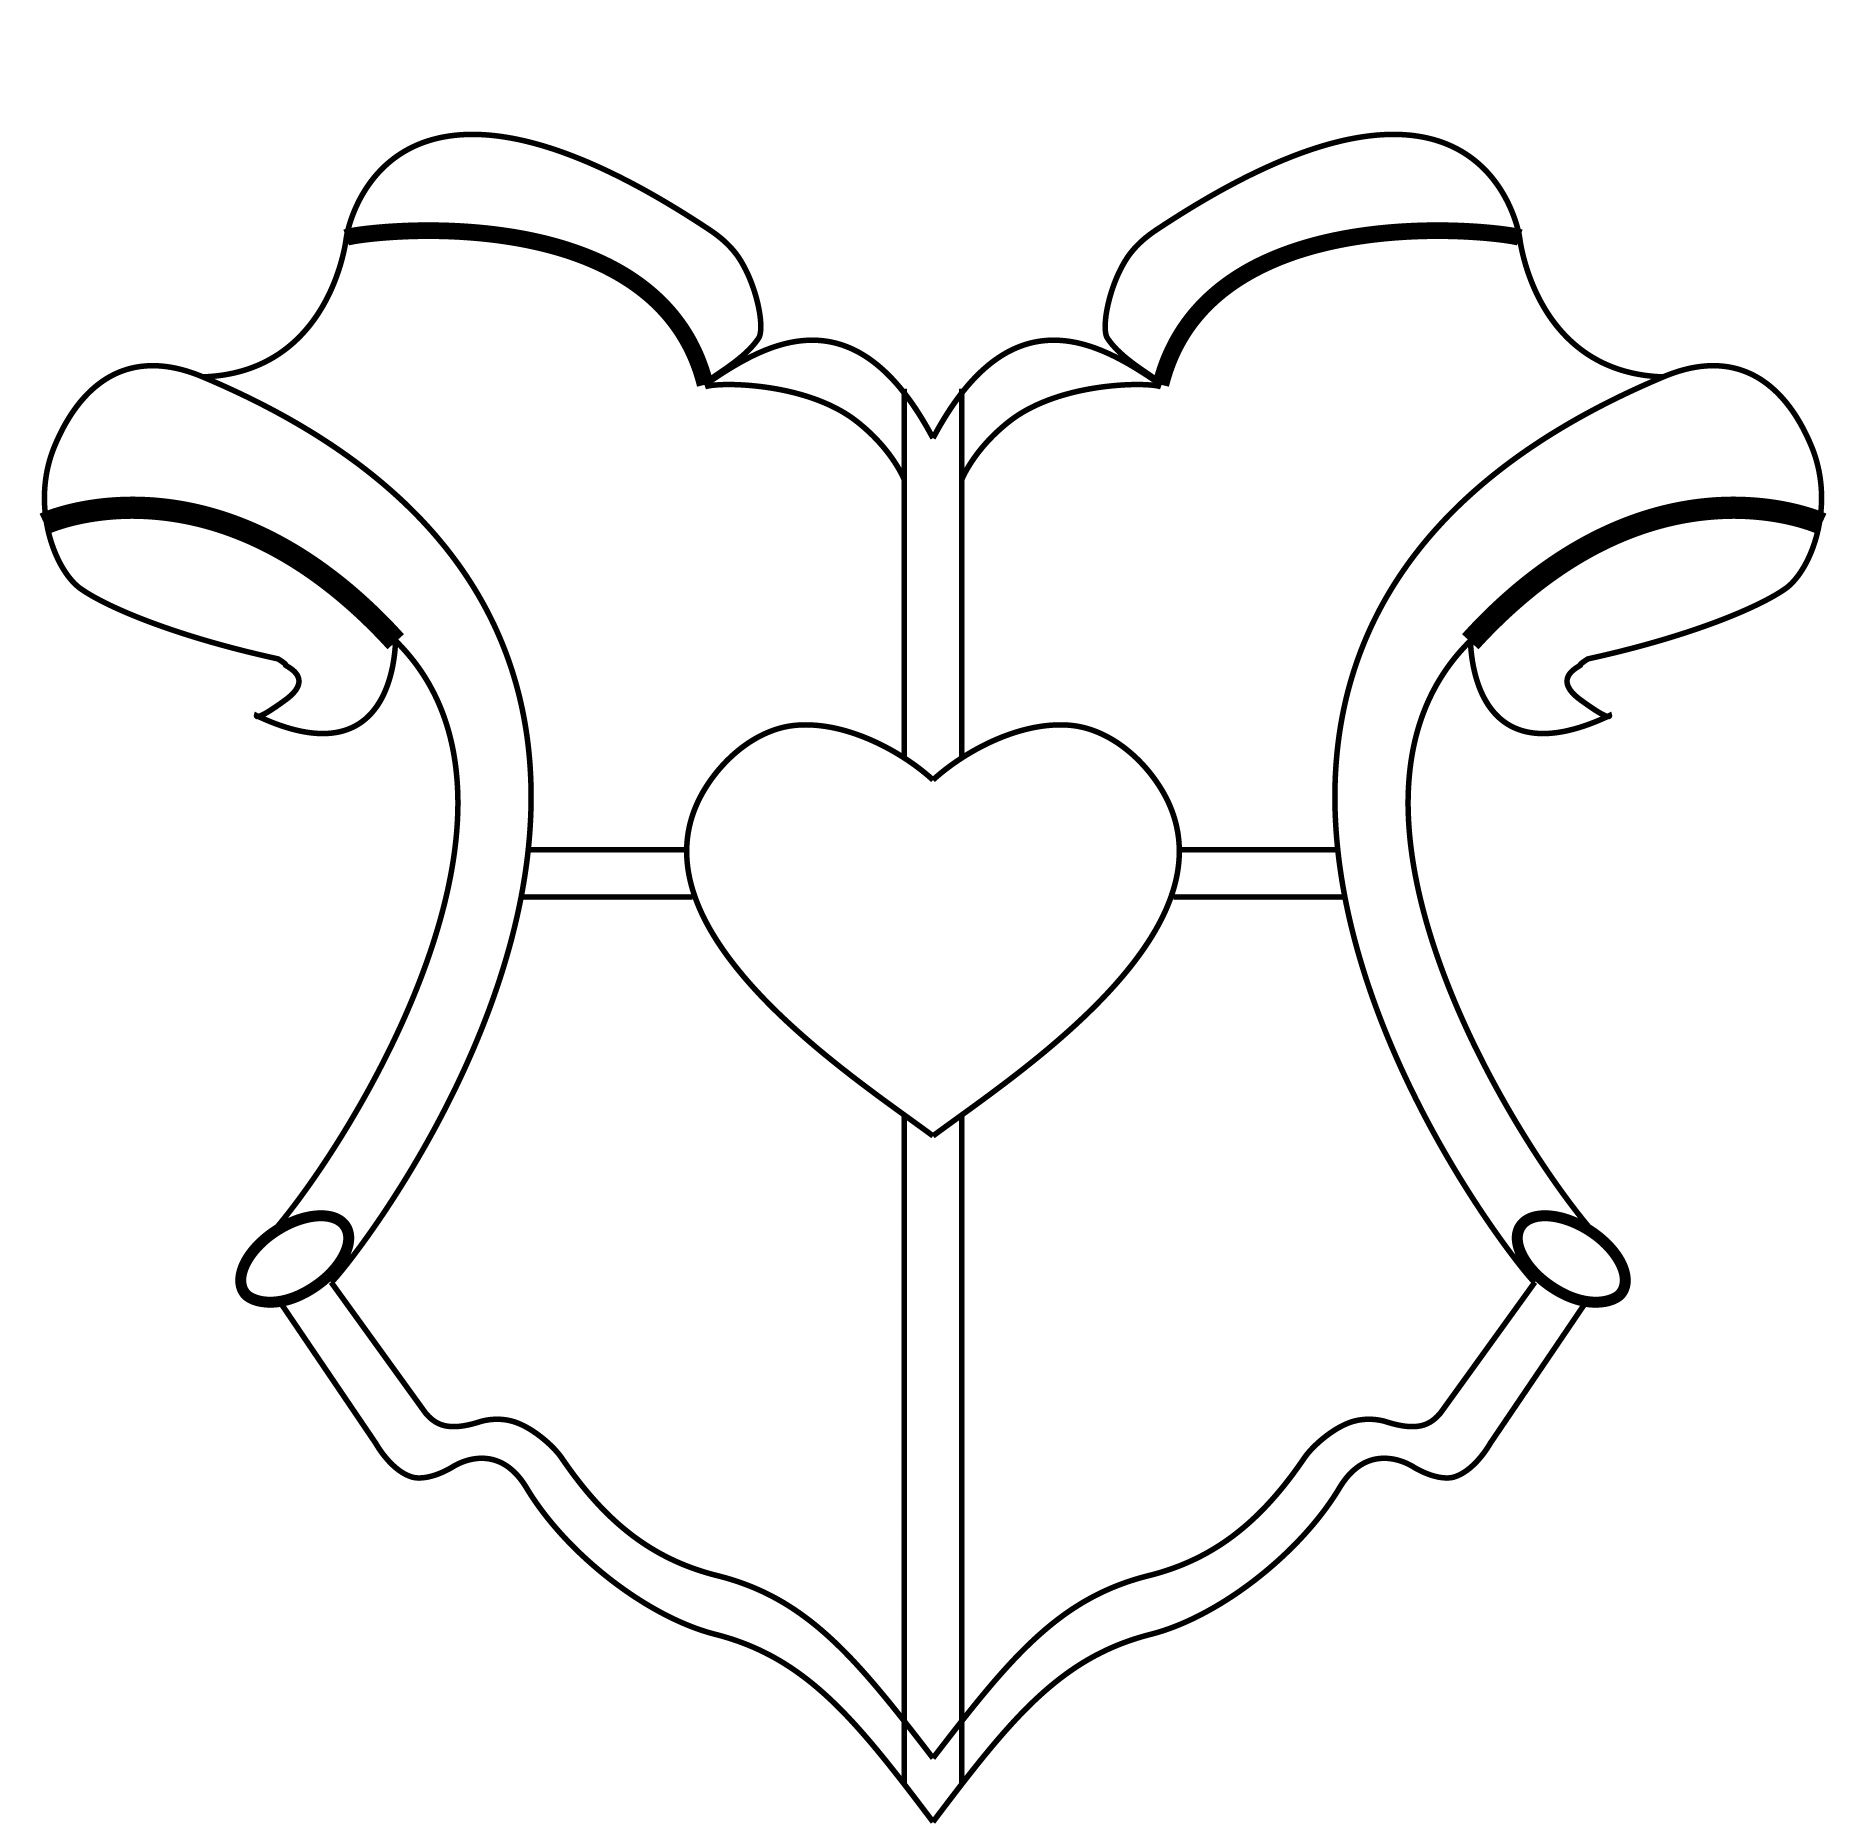 1866x1833 Best Photos Of Blank Family Crest Template